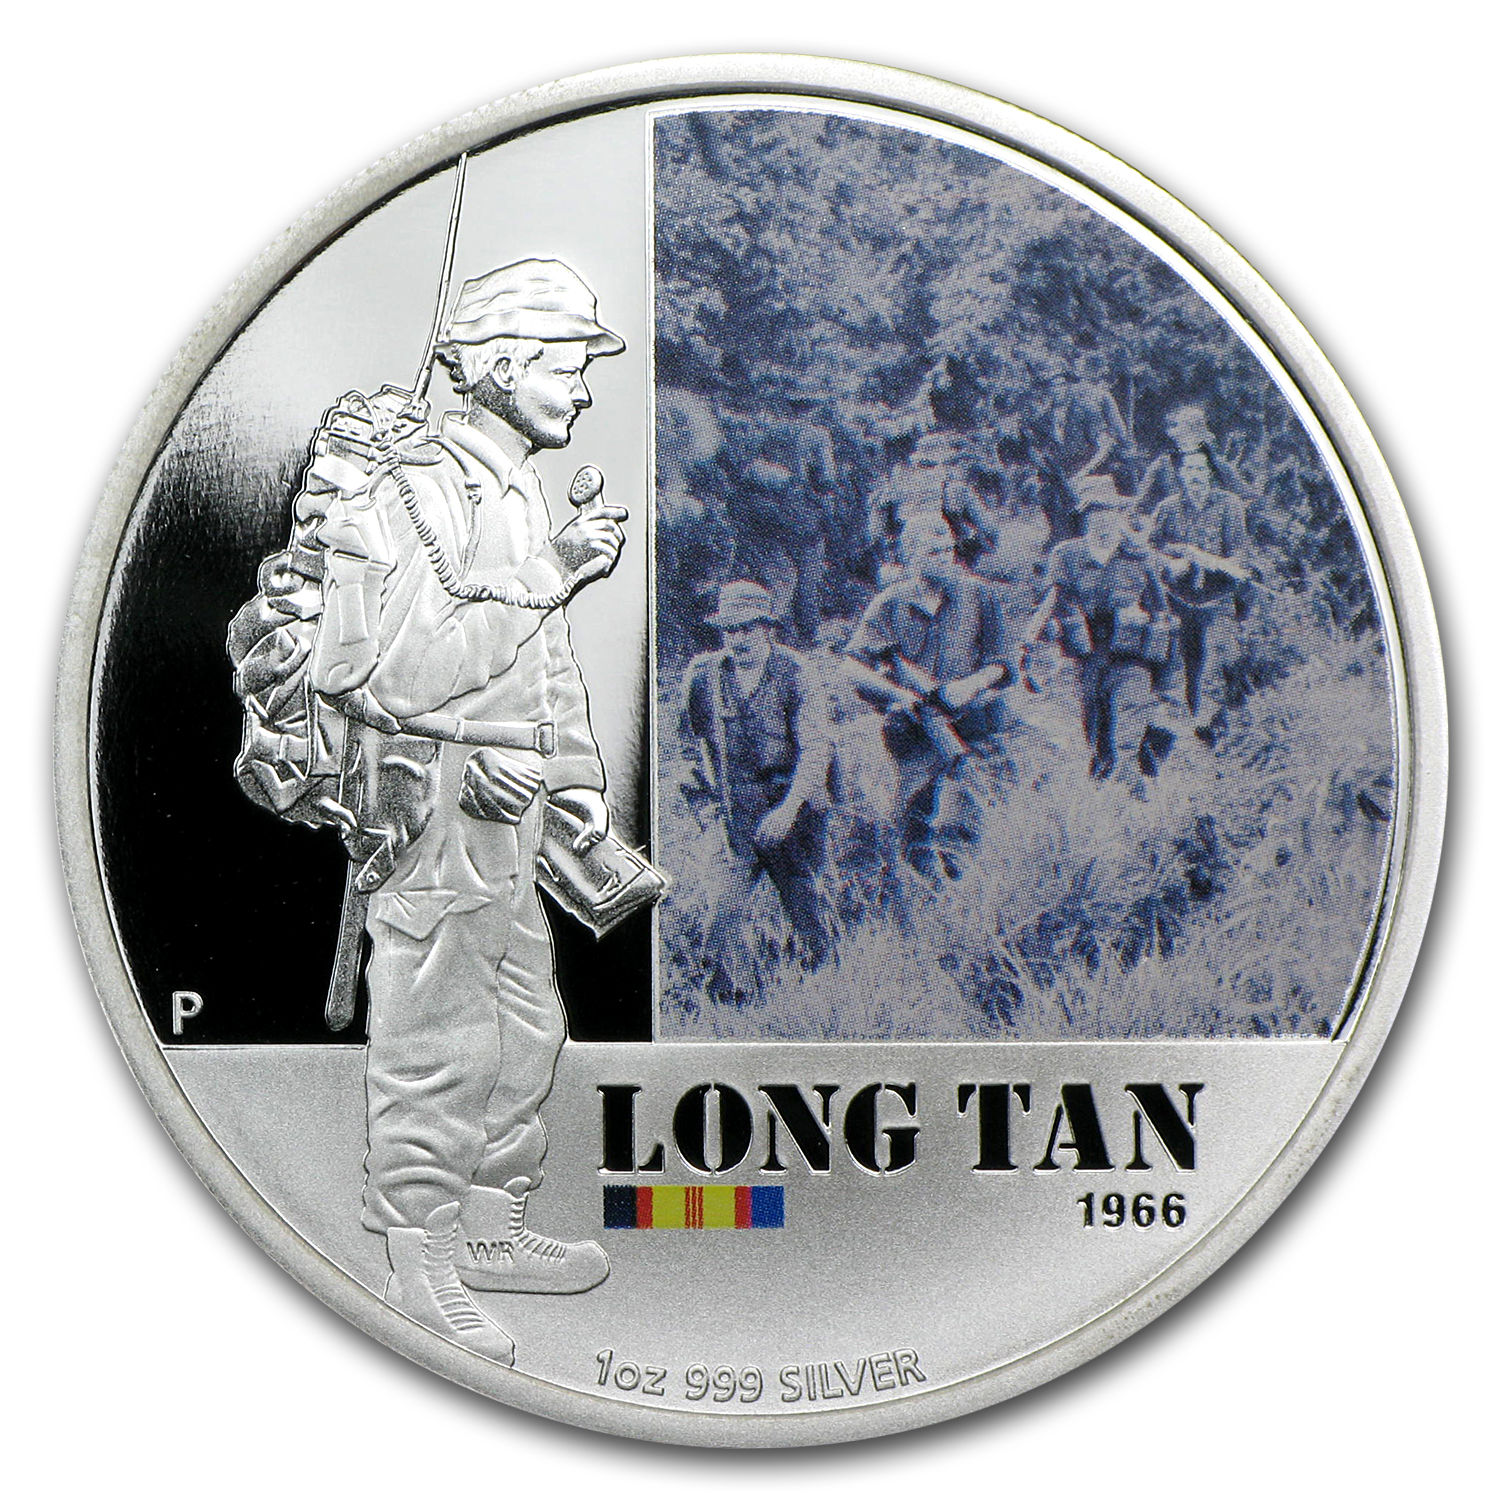 2012 Australia 1 oz Silver Battle of Long Tan Proof